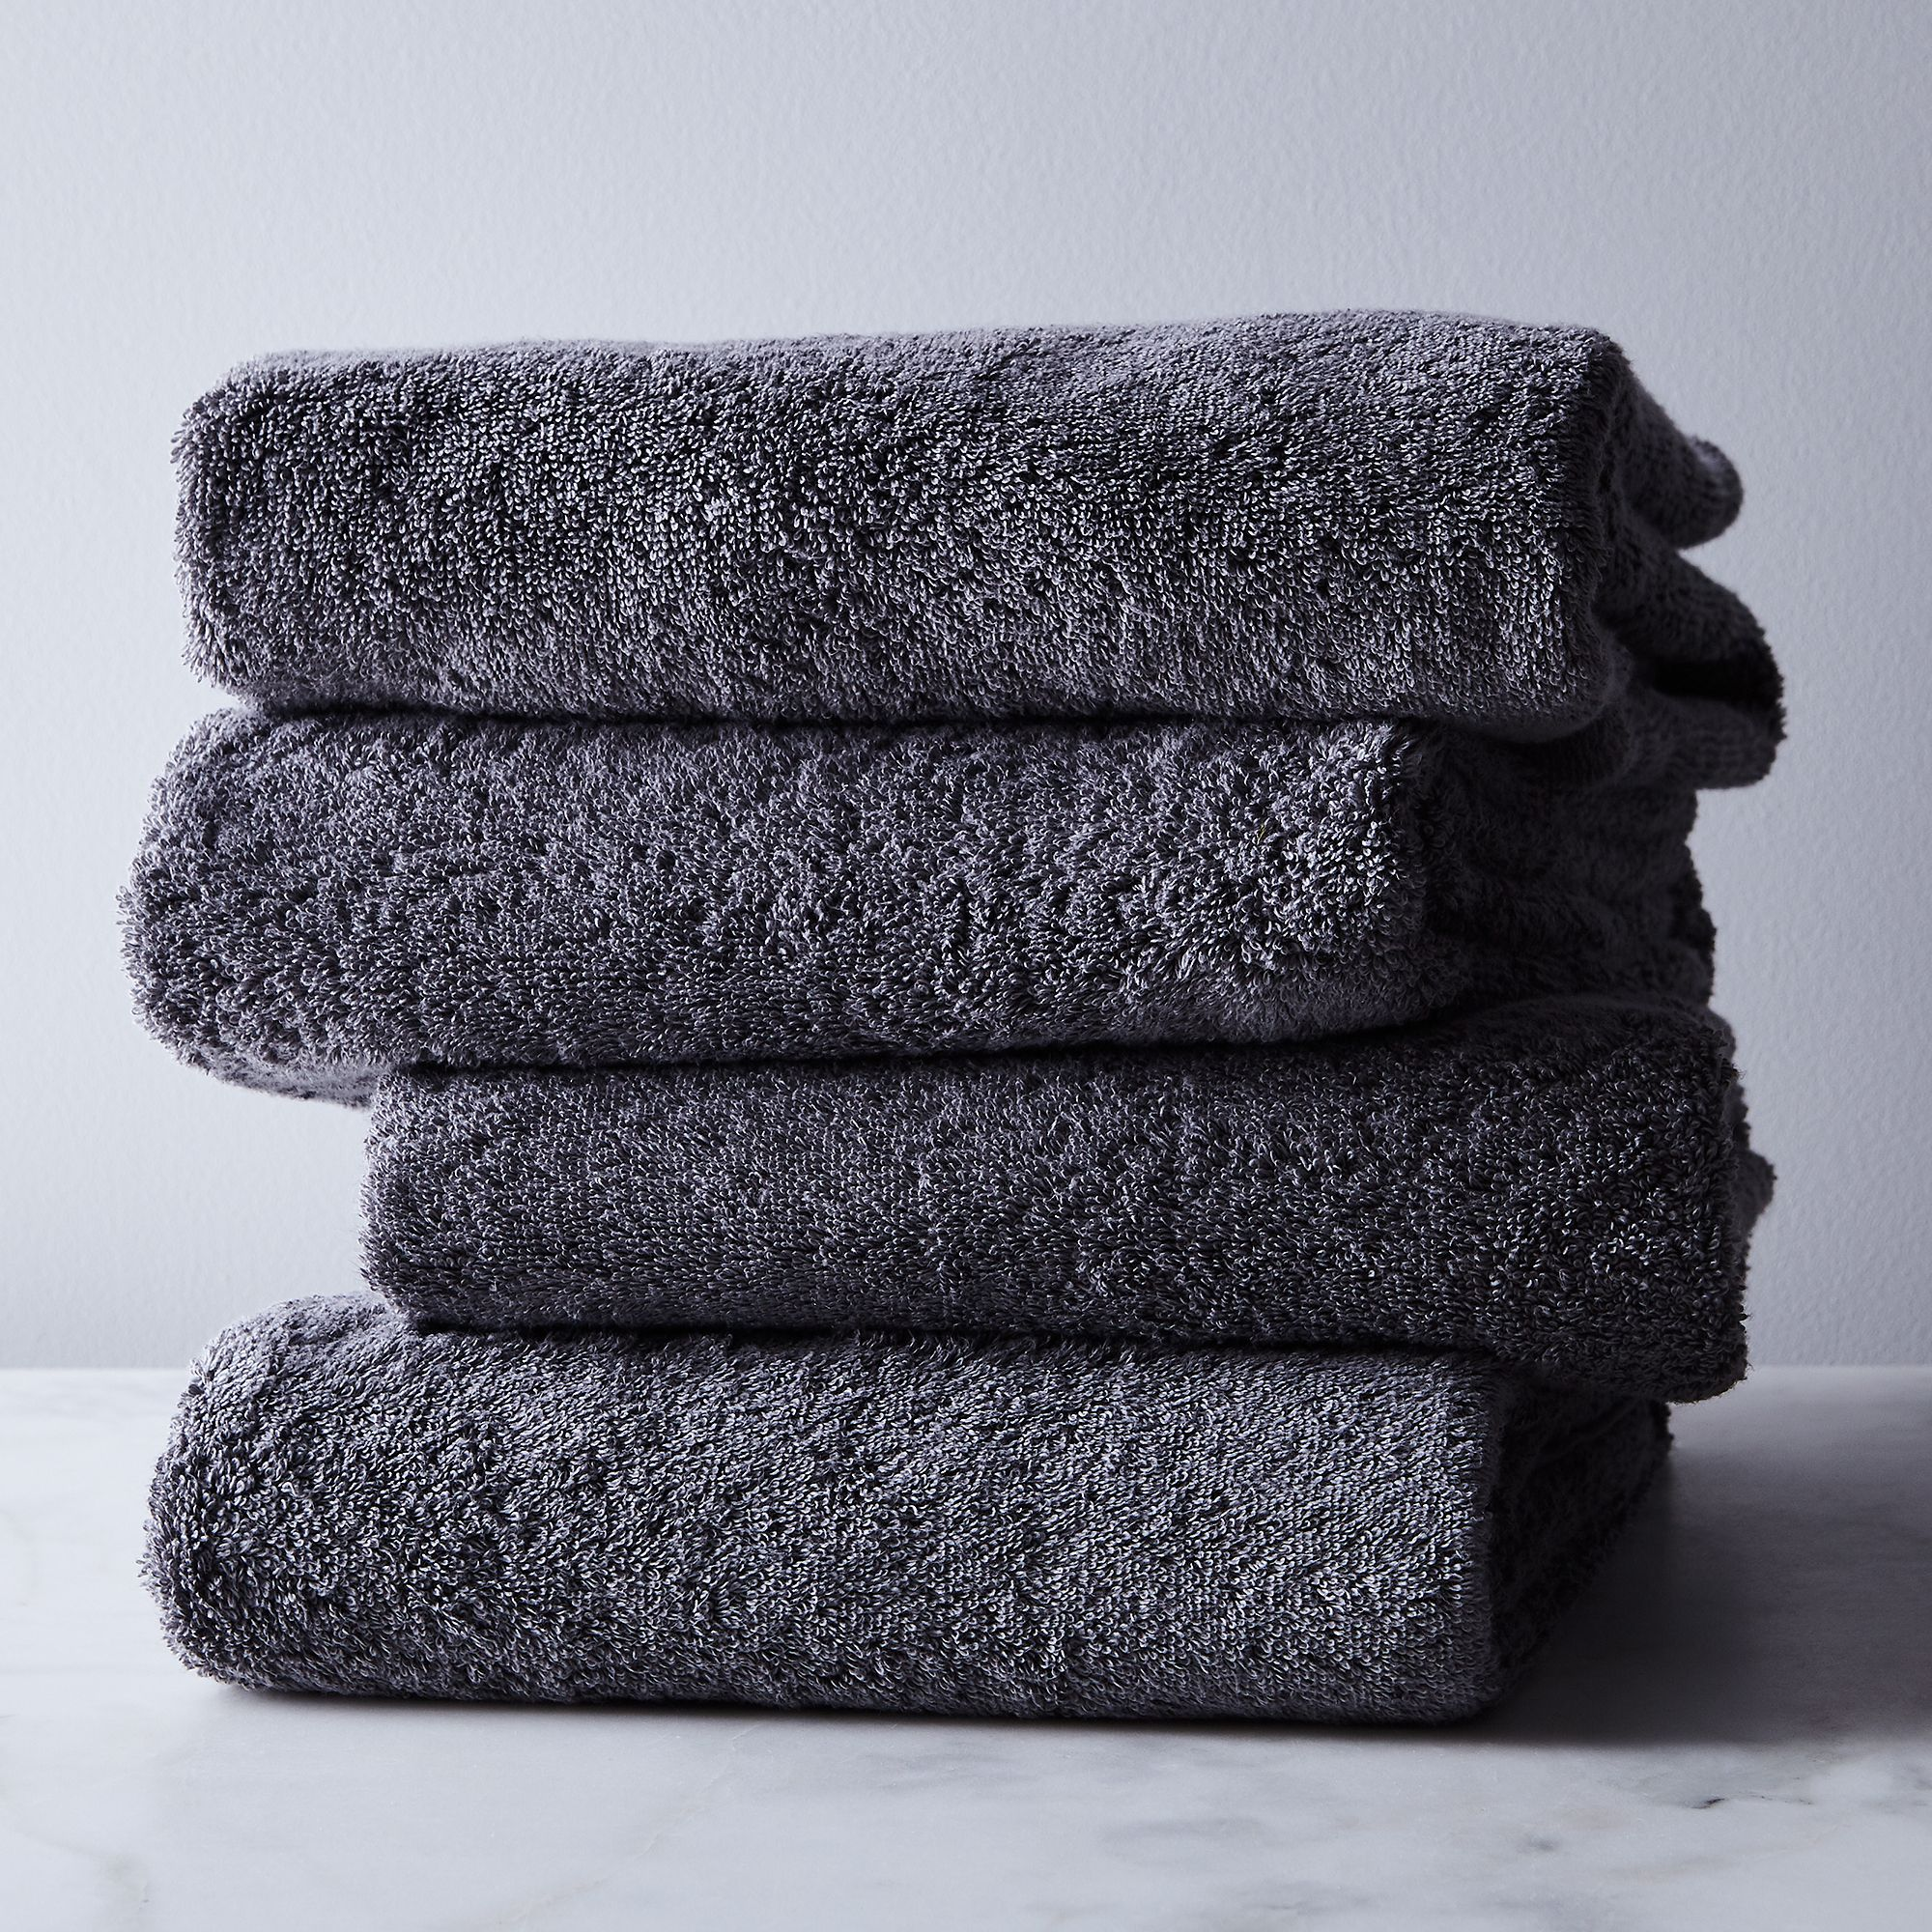 4802a9d8 d803 44df b499 1316977610f1  2017 0926 snowe home soft cotton towels bath towel set of 4 charcoal grey silo rocky luten 014